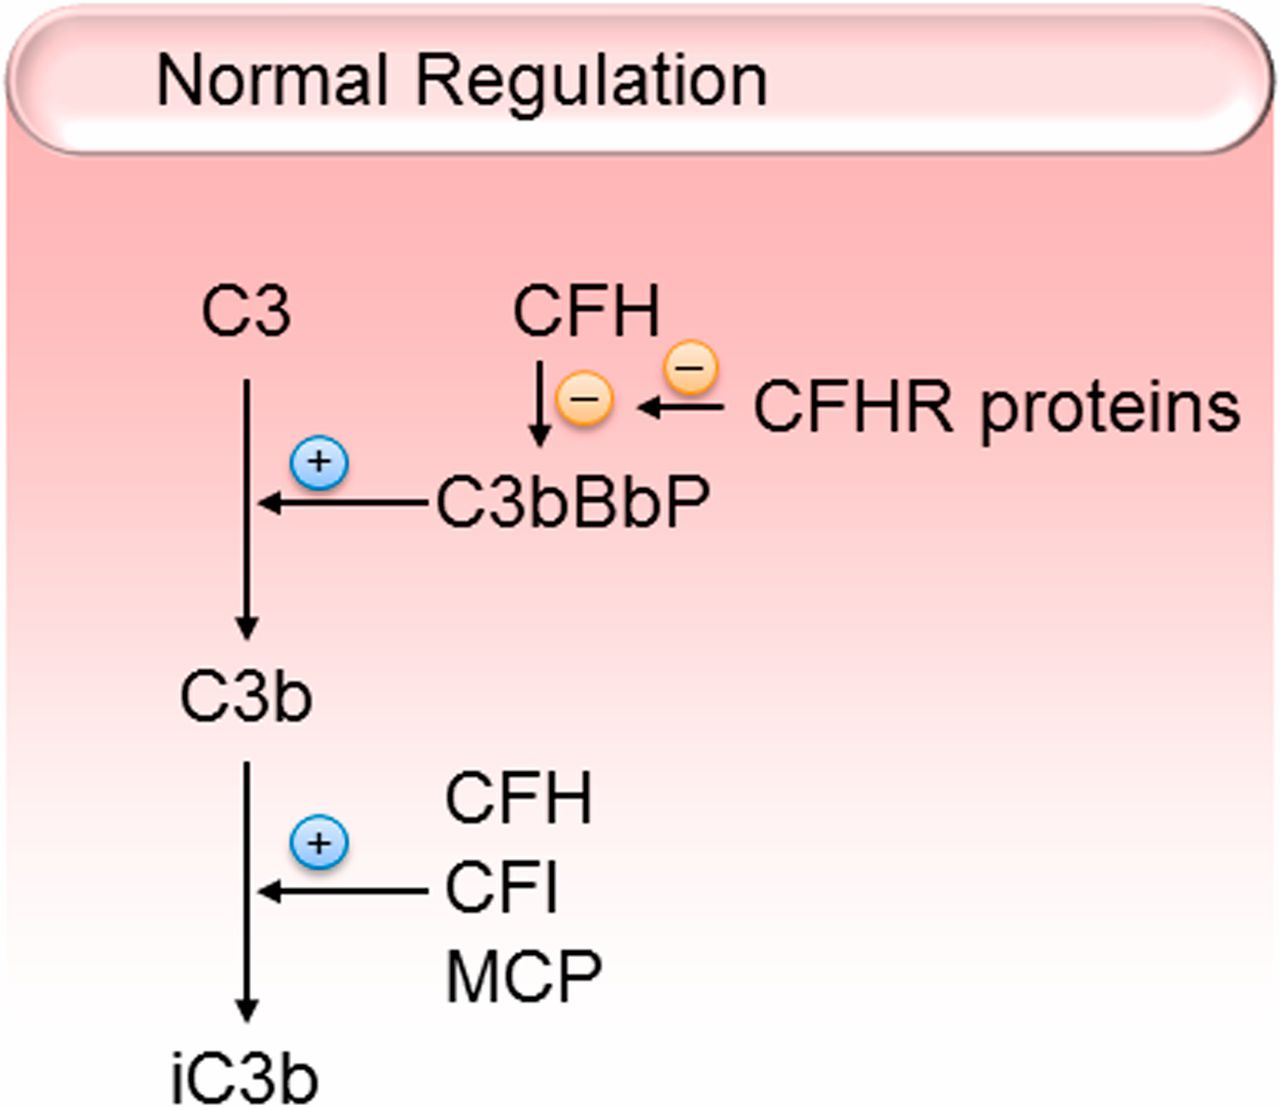 Kidney Disease Caused by Dysregulation of the Complement